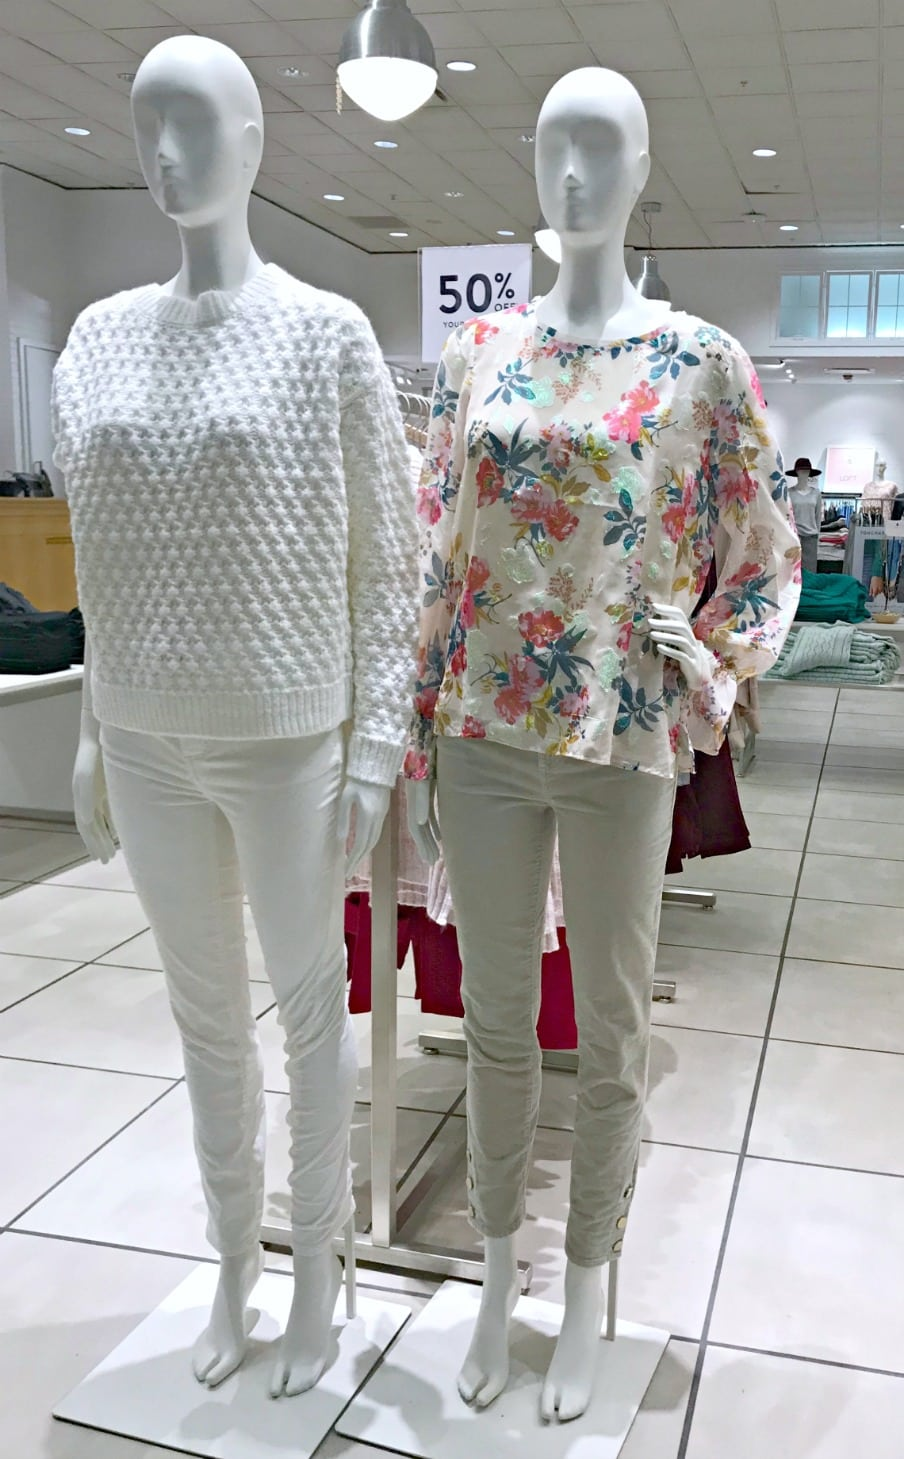 2 mannequins in casual outfits from Loft